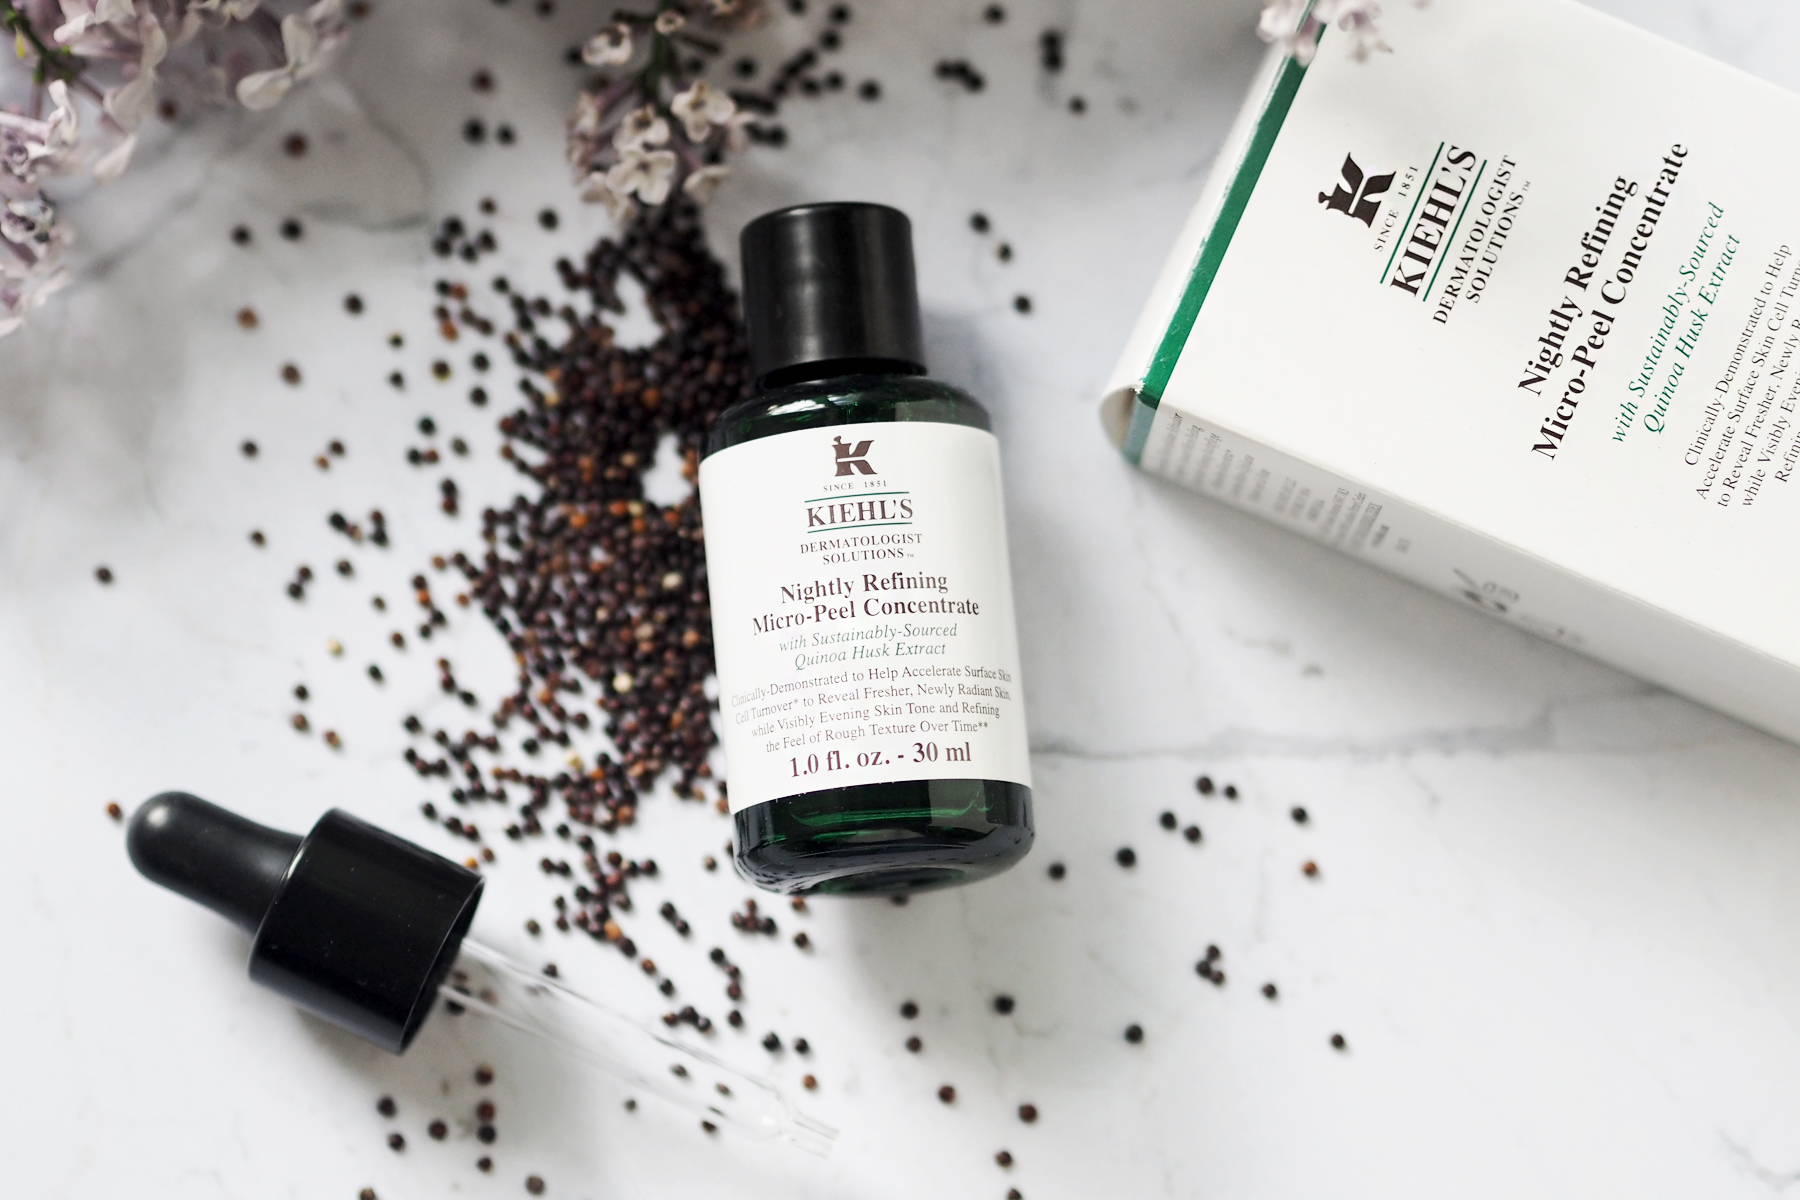 kiehl's quinoa Nightly Refining Micro-Peel Concentrate overnight peeling anti-aging effect beauty beautyblogger cats & dogs blog ricarda schernus modeblogger 5